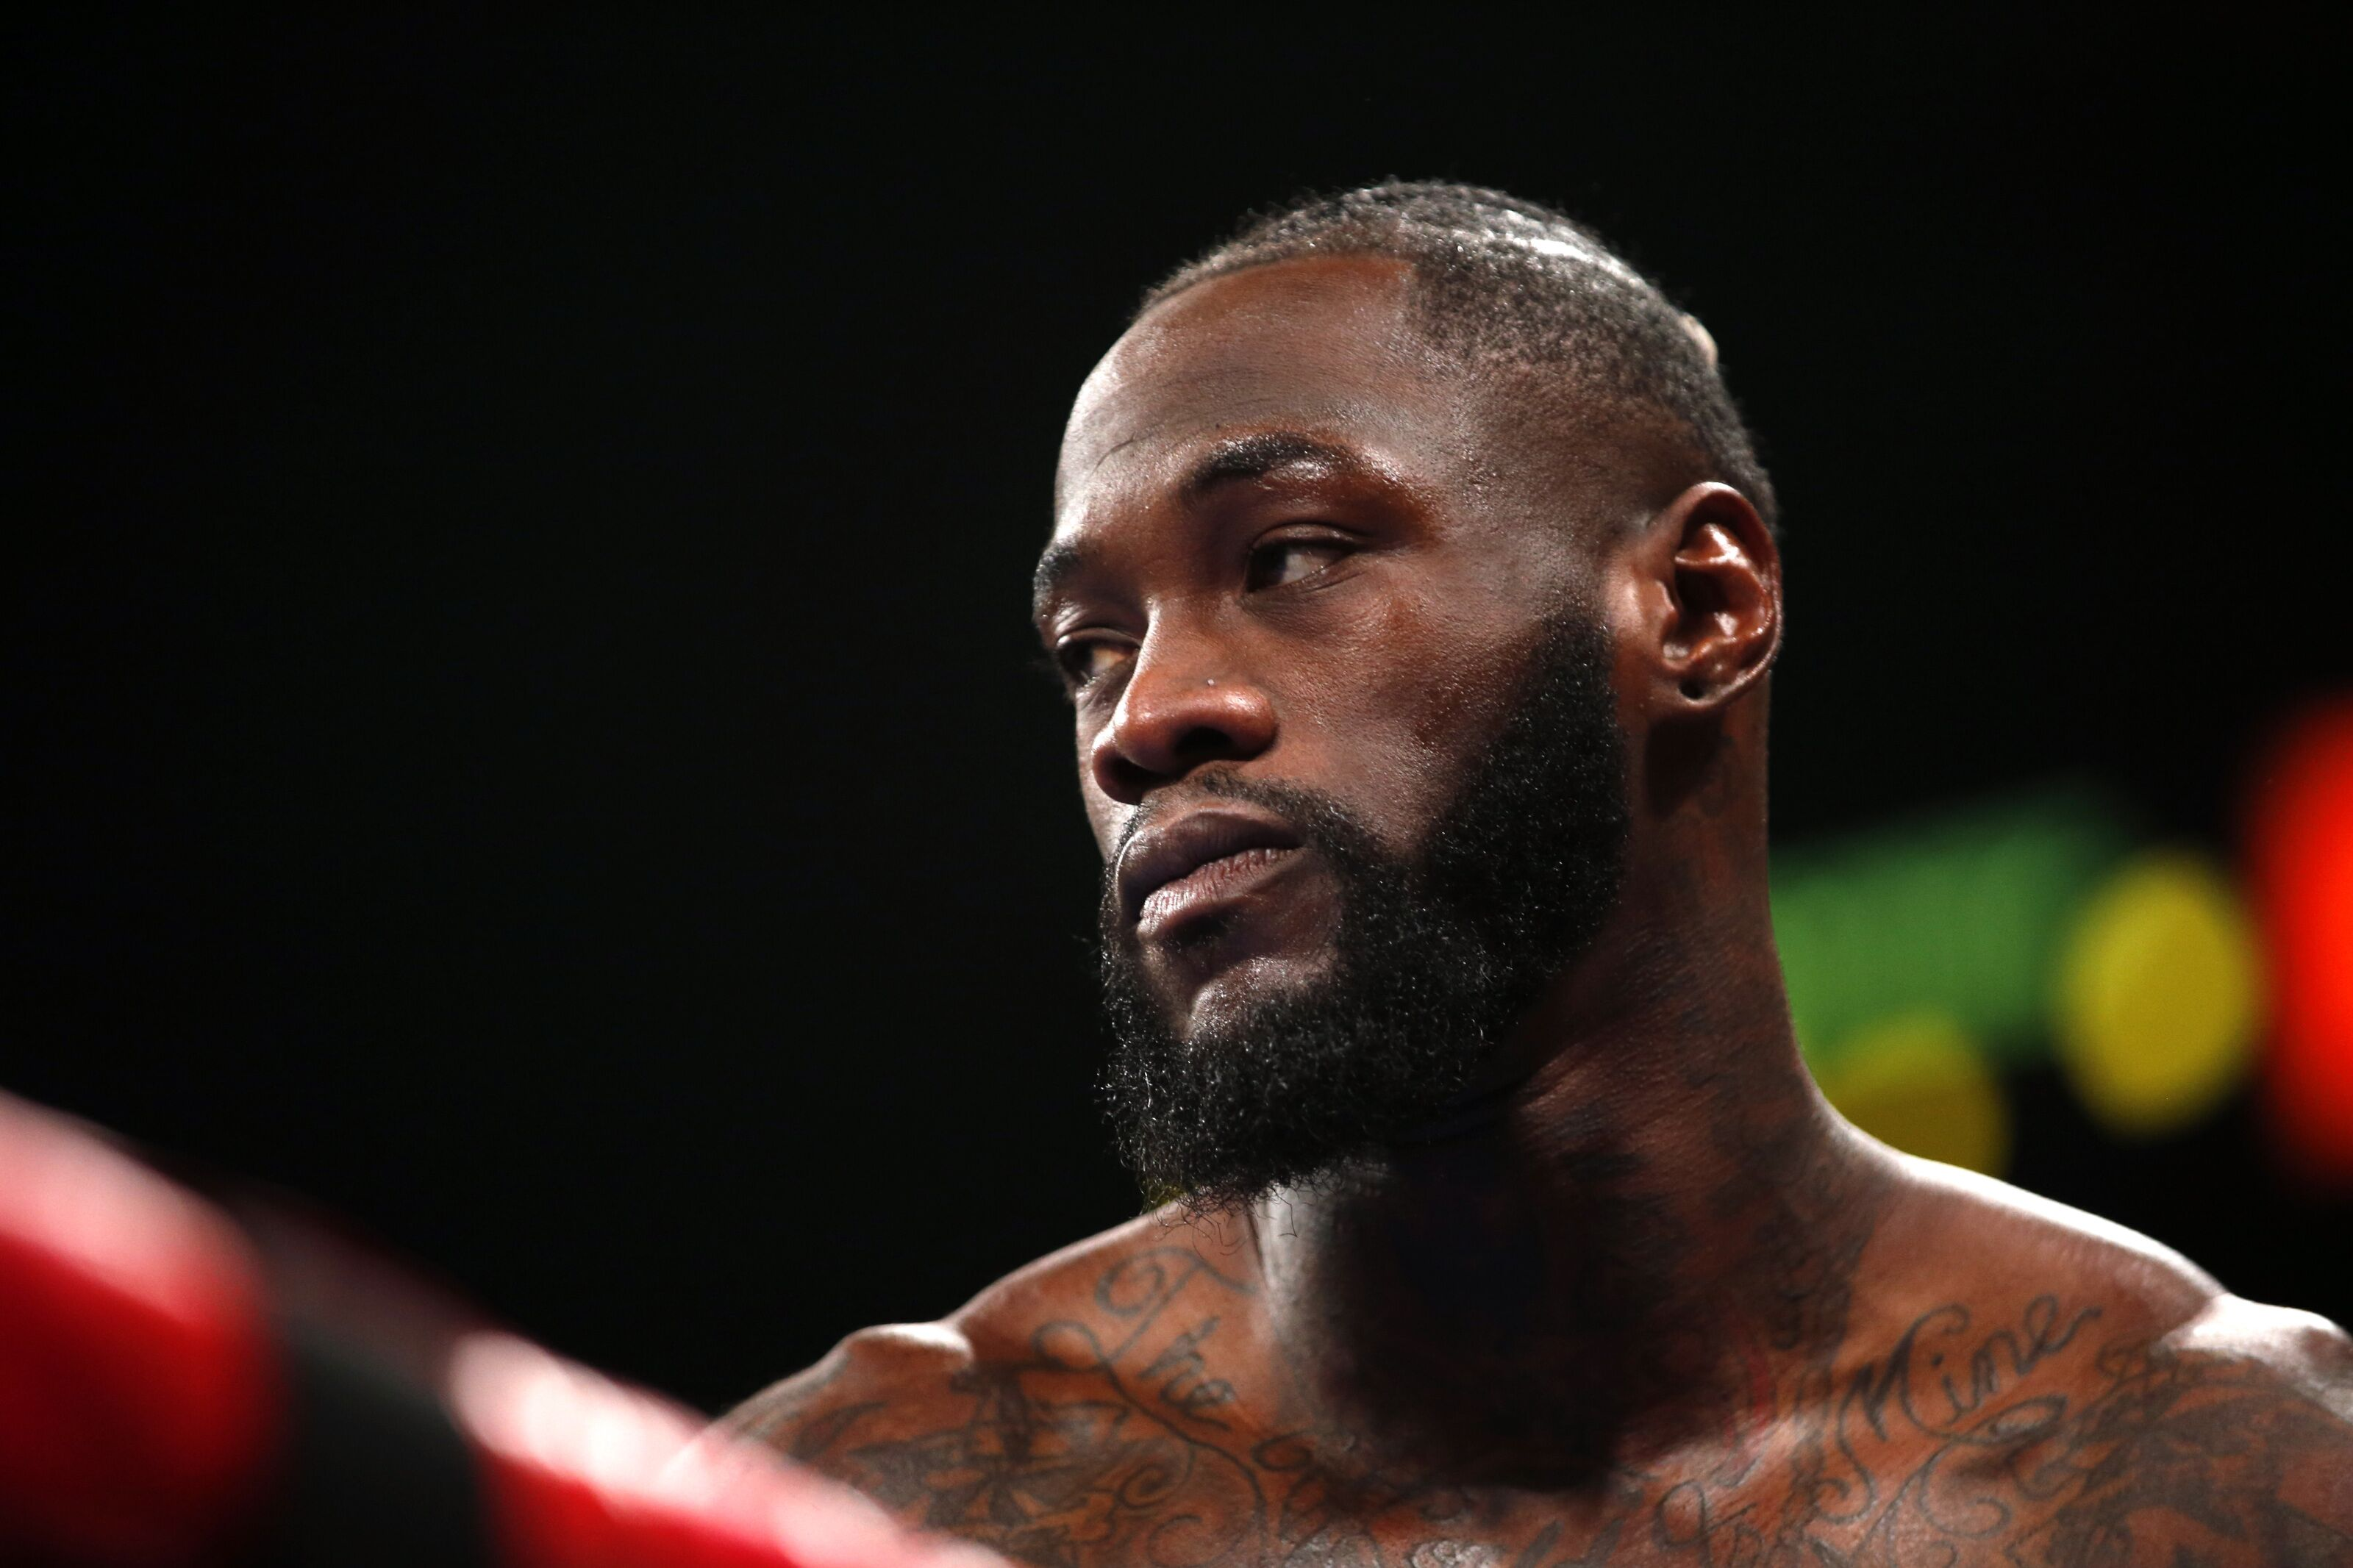 Deontay Wilder: Overcoming darkness before the fame